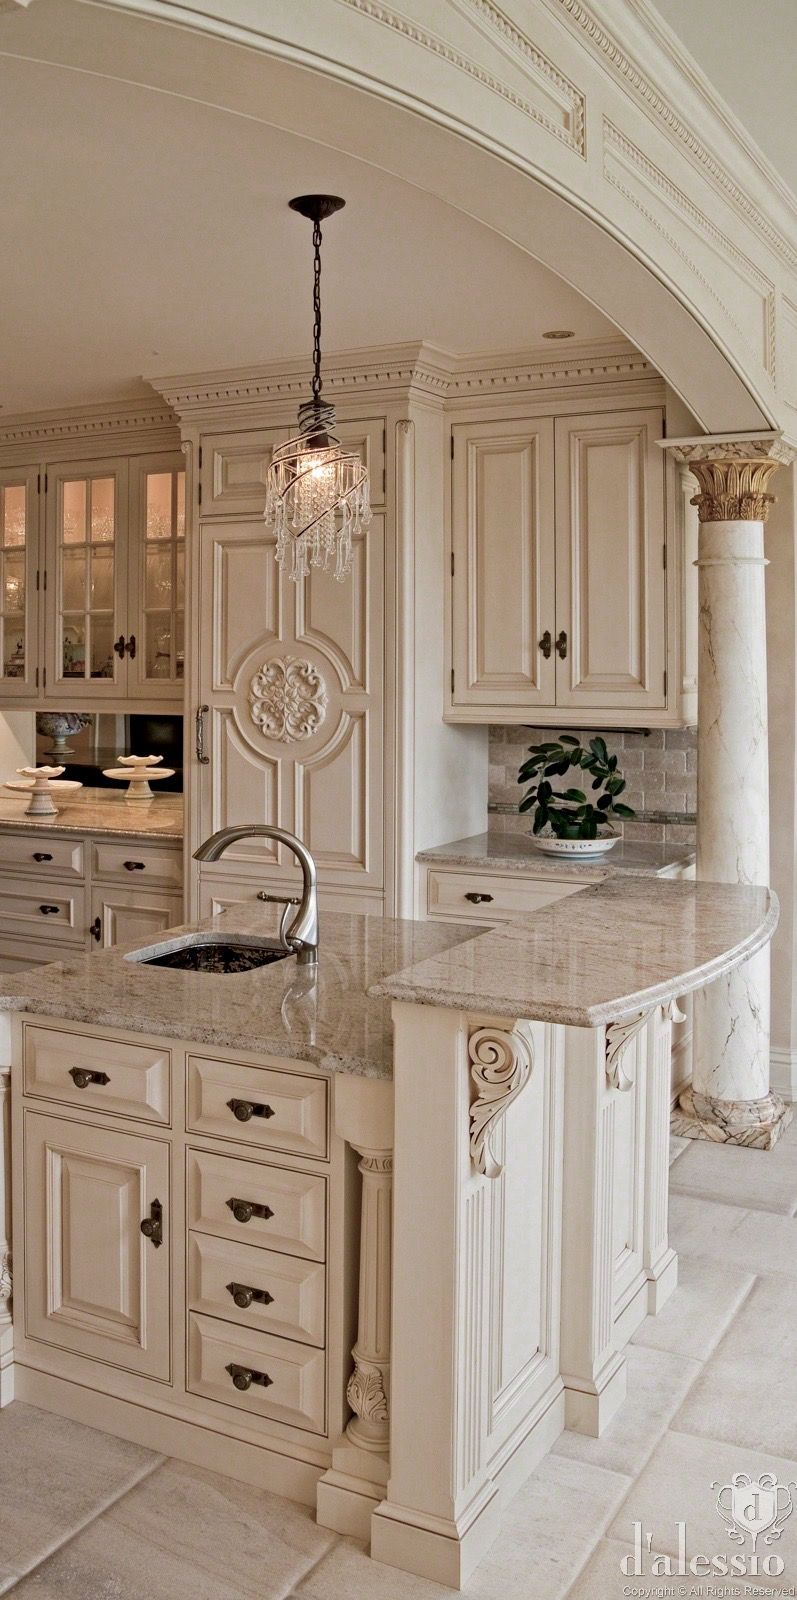 Lovely Tuscan Style Cabinet Hardware